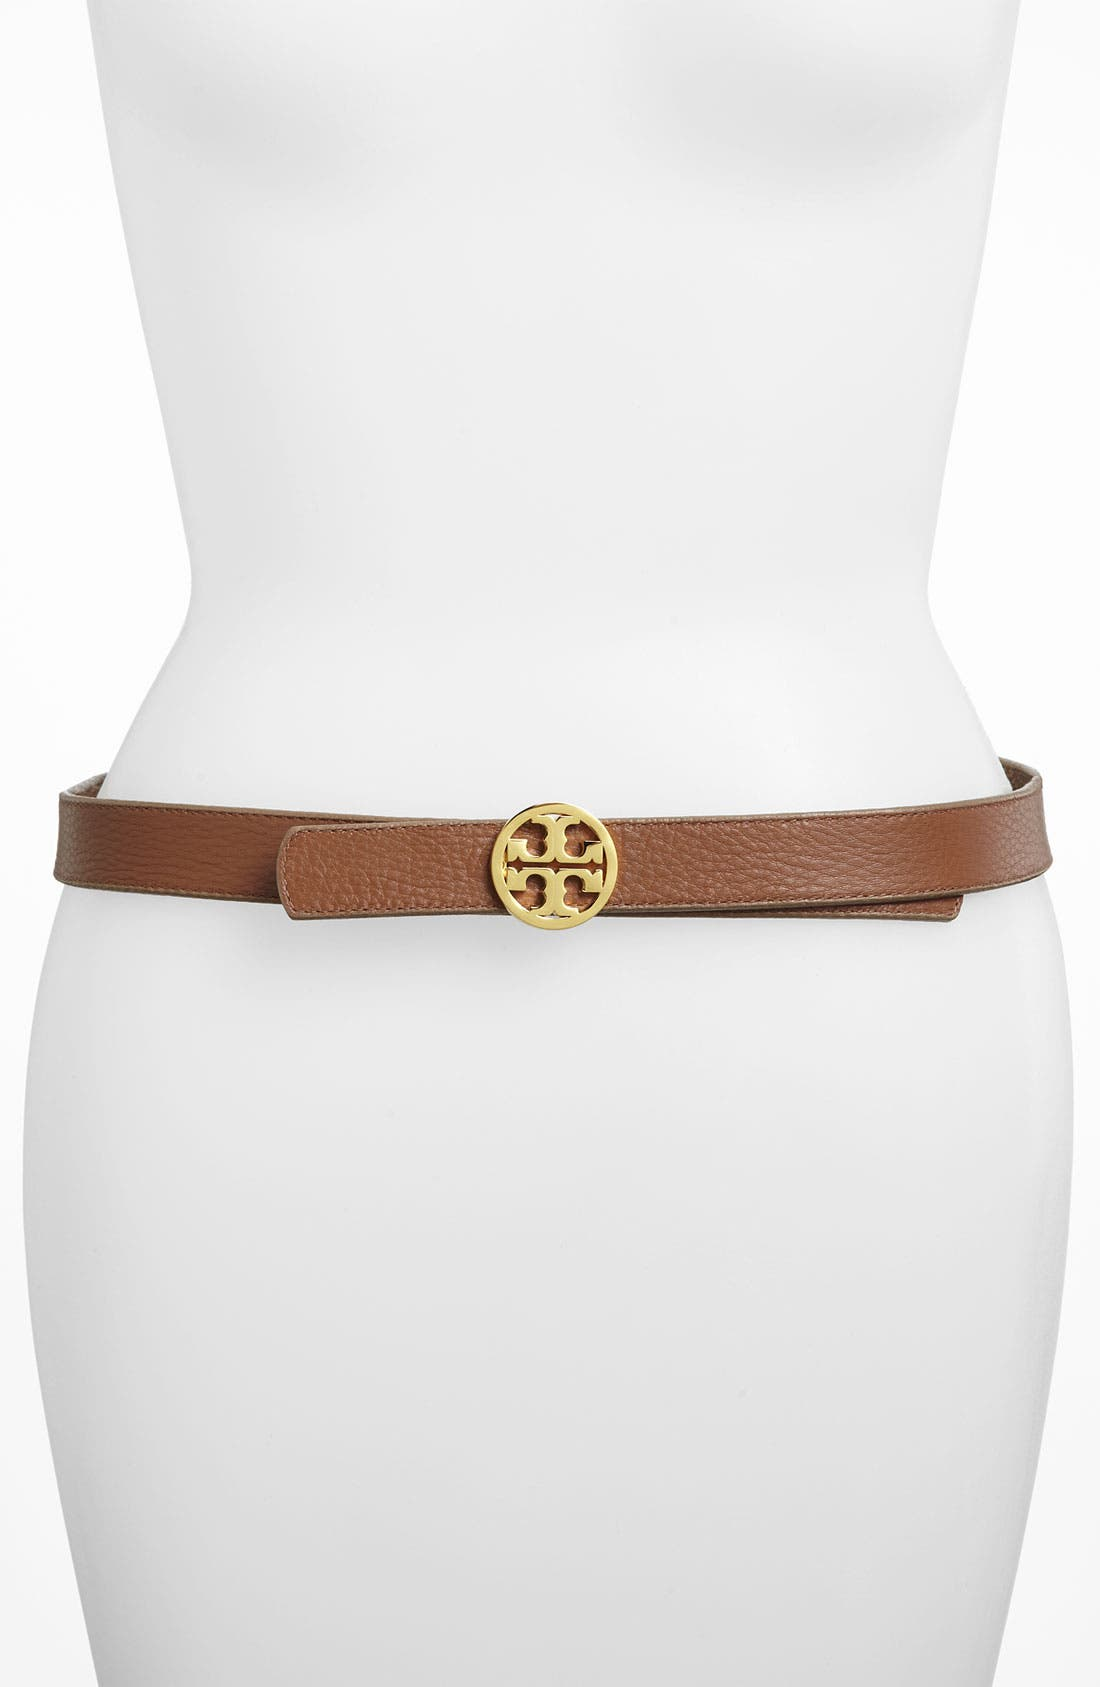 Alternate Image 2  - Tory Burch Reversible Python Print Belt